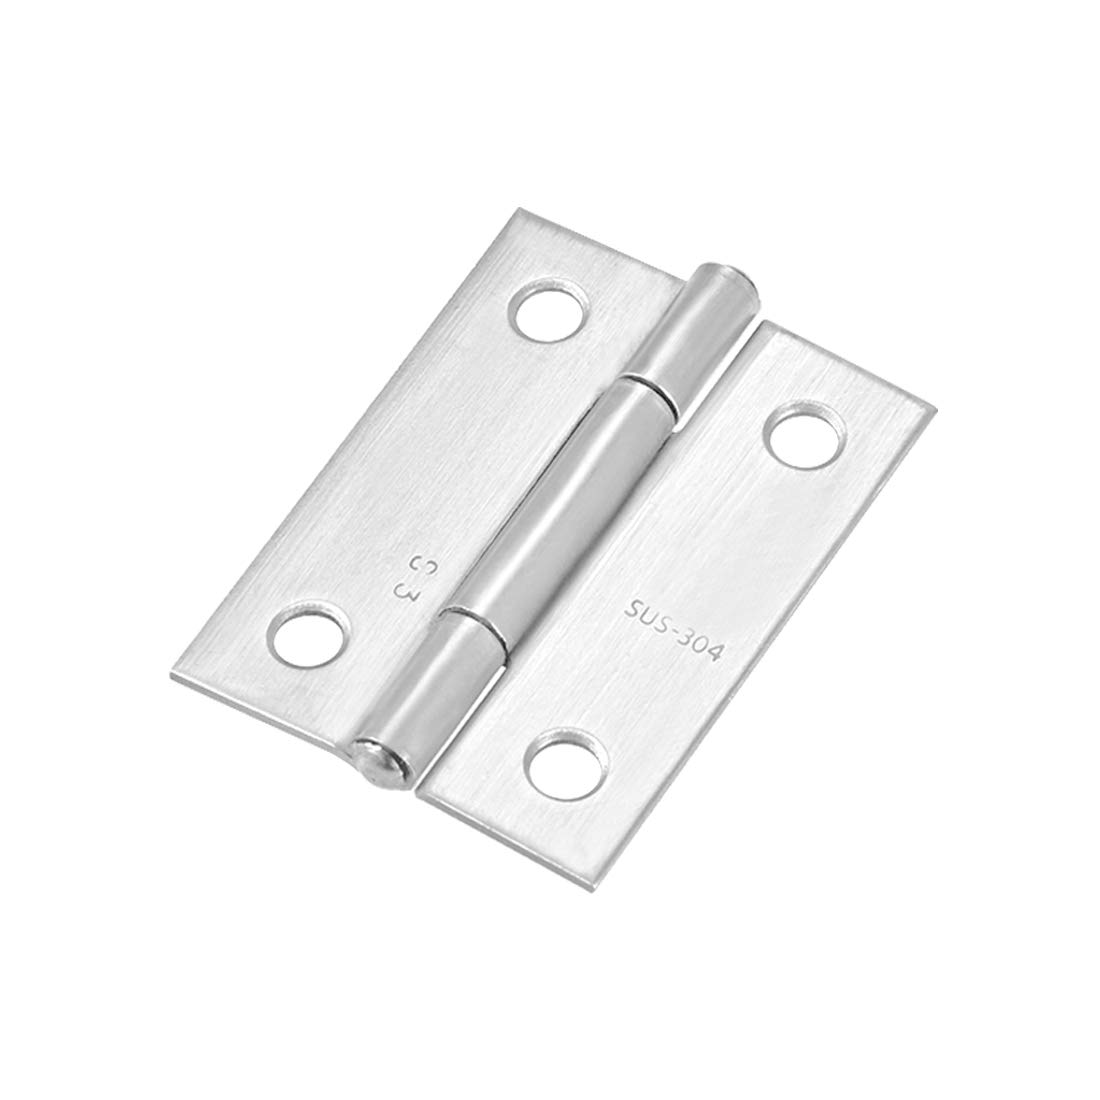 uxcell 1.97inch Hinge Silver Door Cabinet Hinges Fittings Brushed Chrome Plain 12pcs